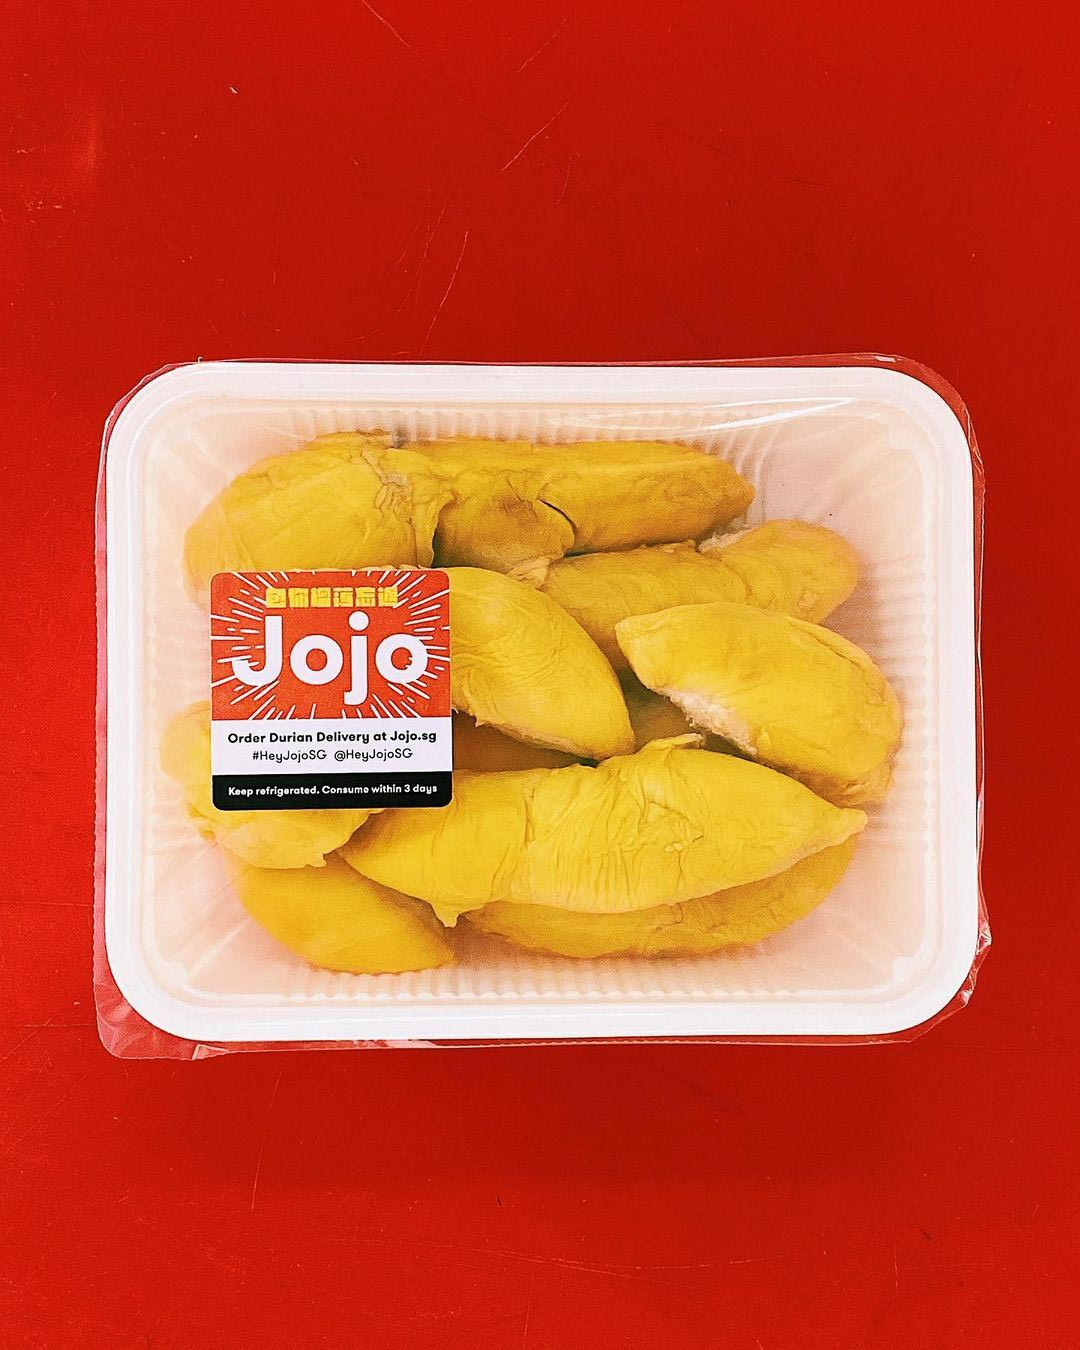 Durian delivery- Jojo durian